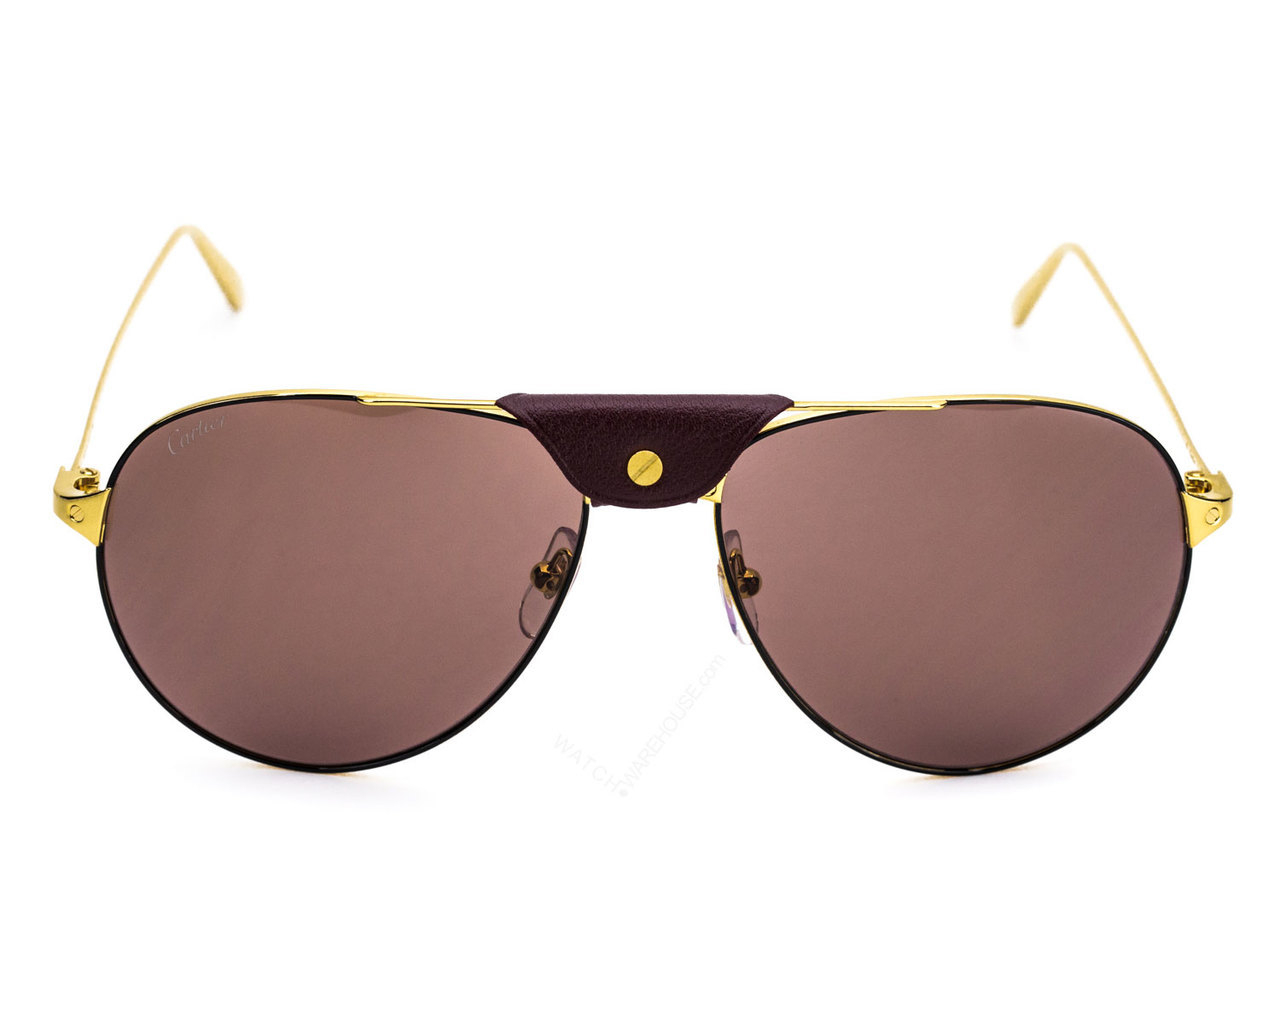 Cartier - Occhiale da Sole Unisex, Santos Black Aviator/Burgundy Shaded CT0038S 006  C61